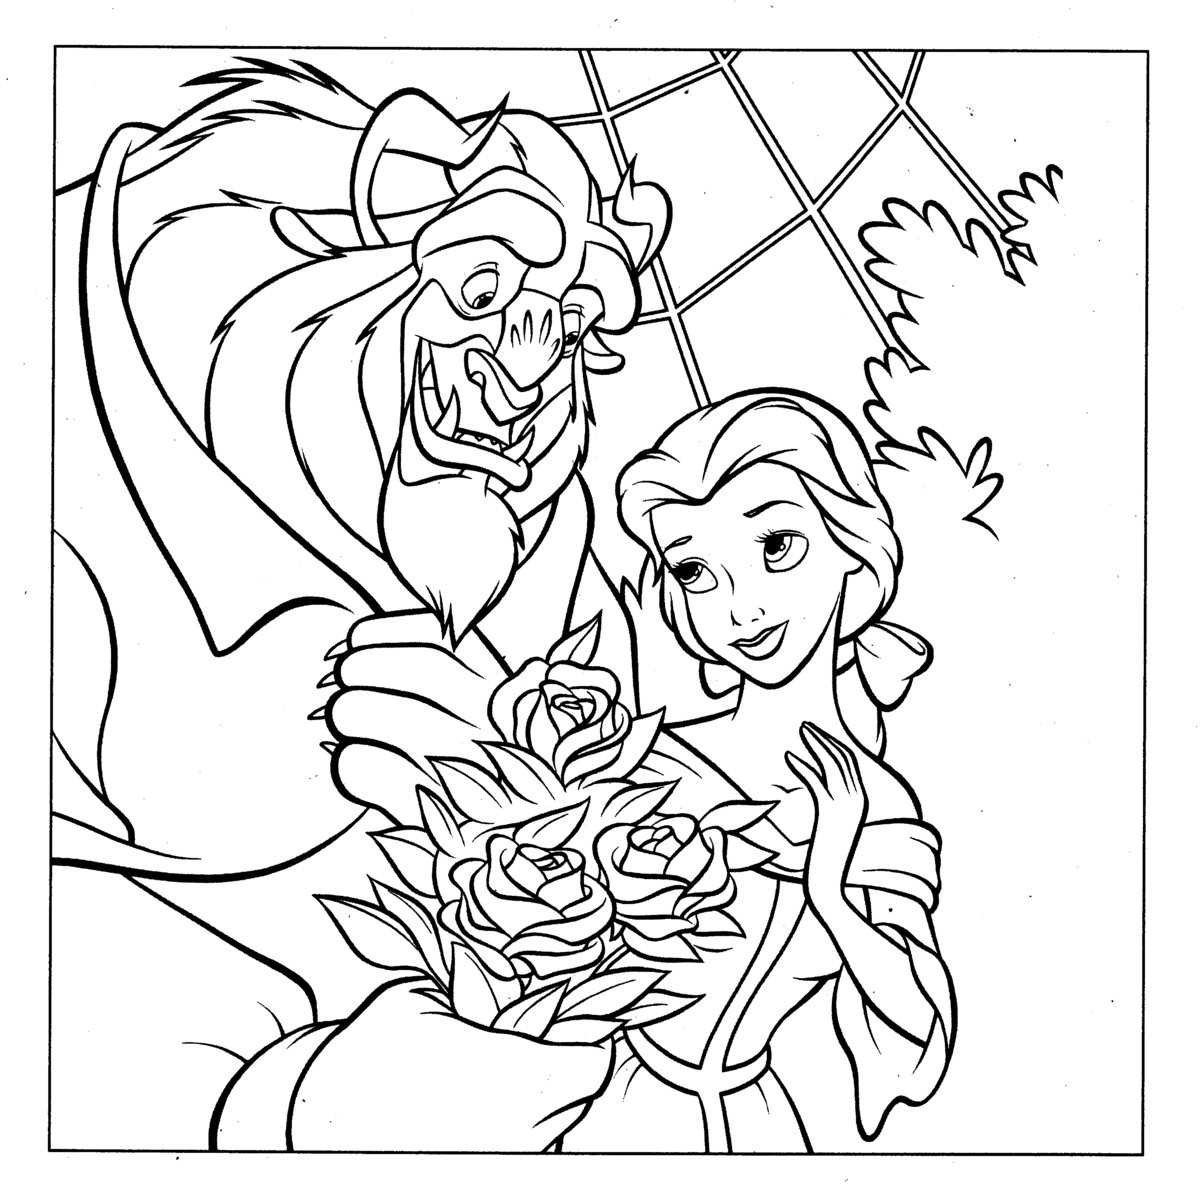 Disney villains coloring pages for kids Free printable